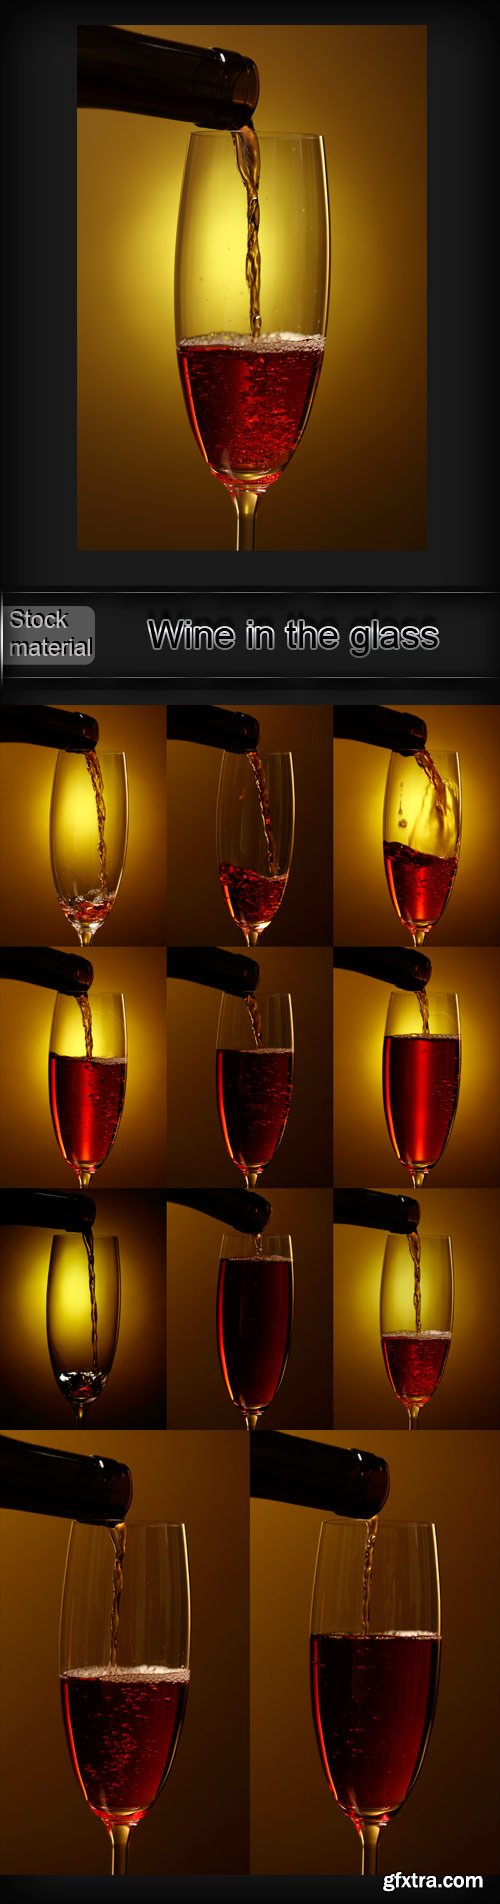 Wine in the glass raster graphics